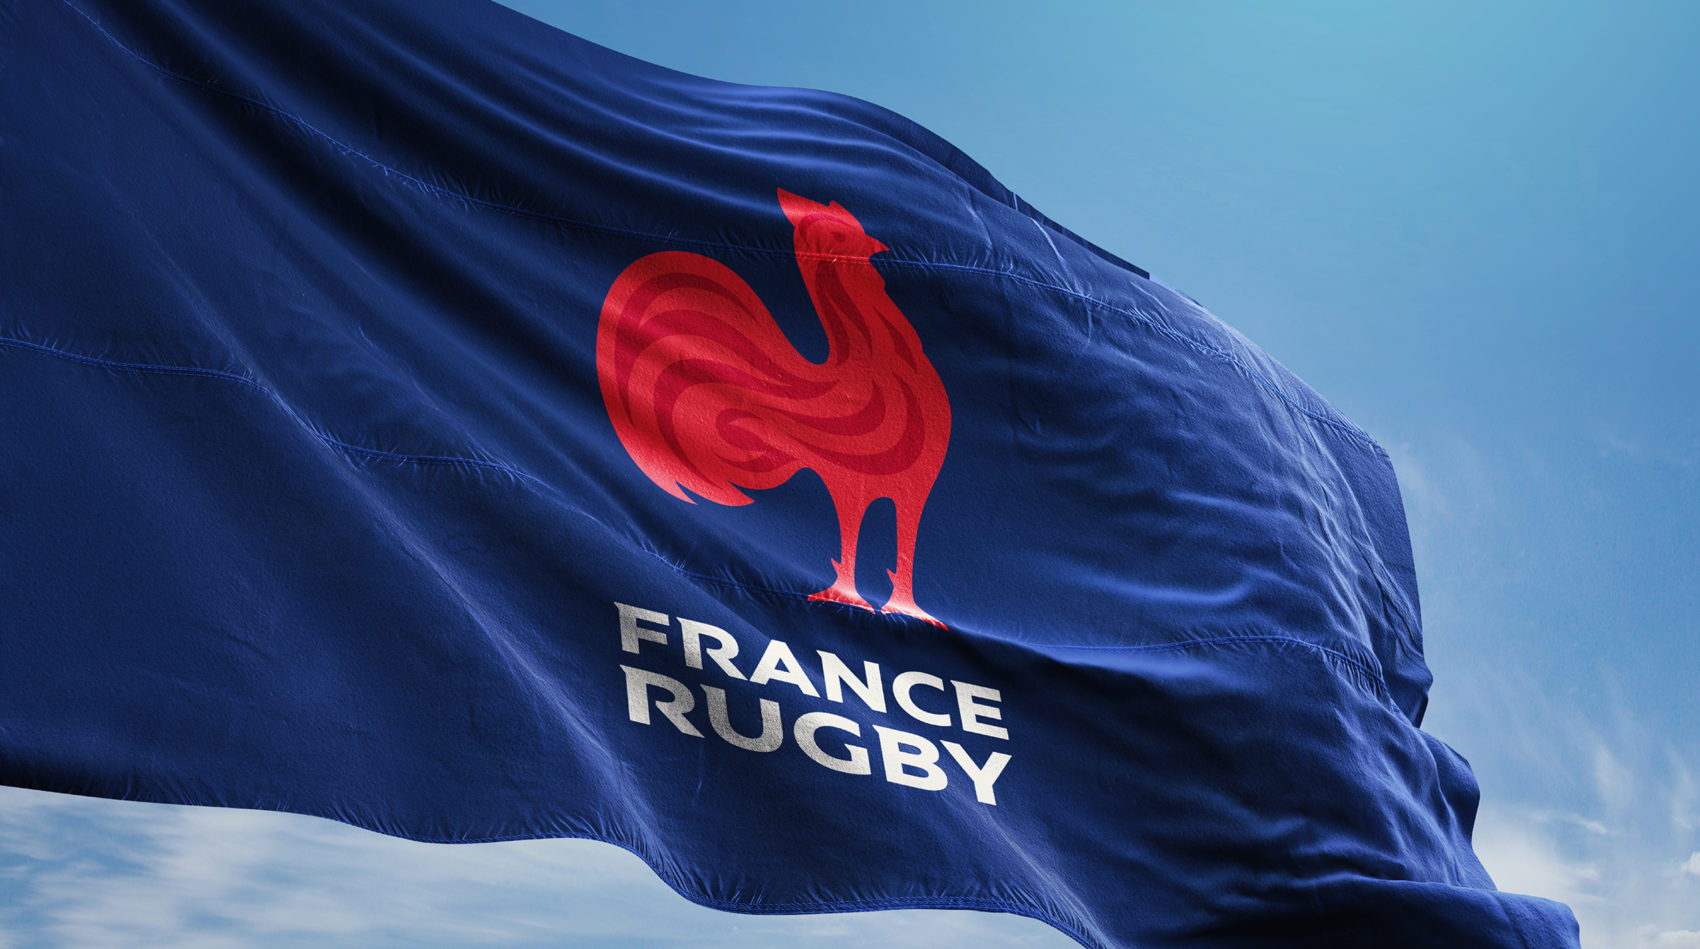 Projet_project_leroy_tremblot_FFR_federation_francaise_rugby_french_nouvelle_identite_new_identity_flag_01